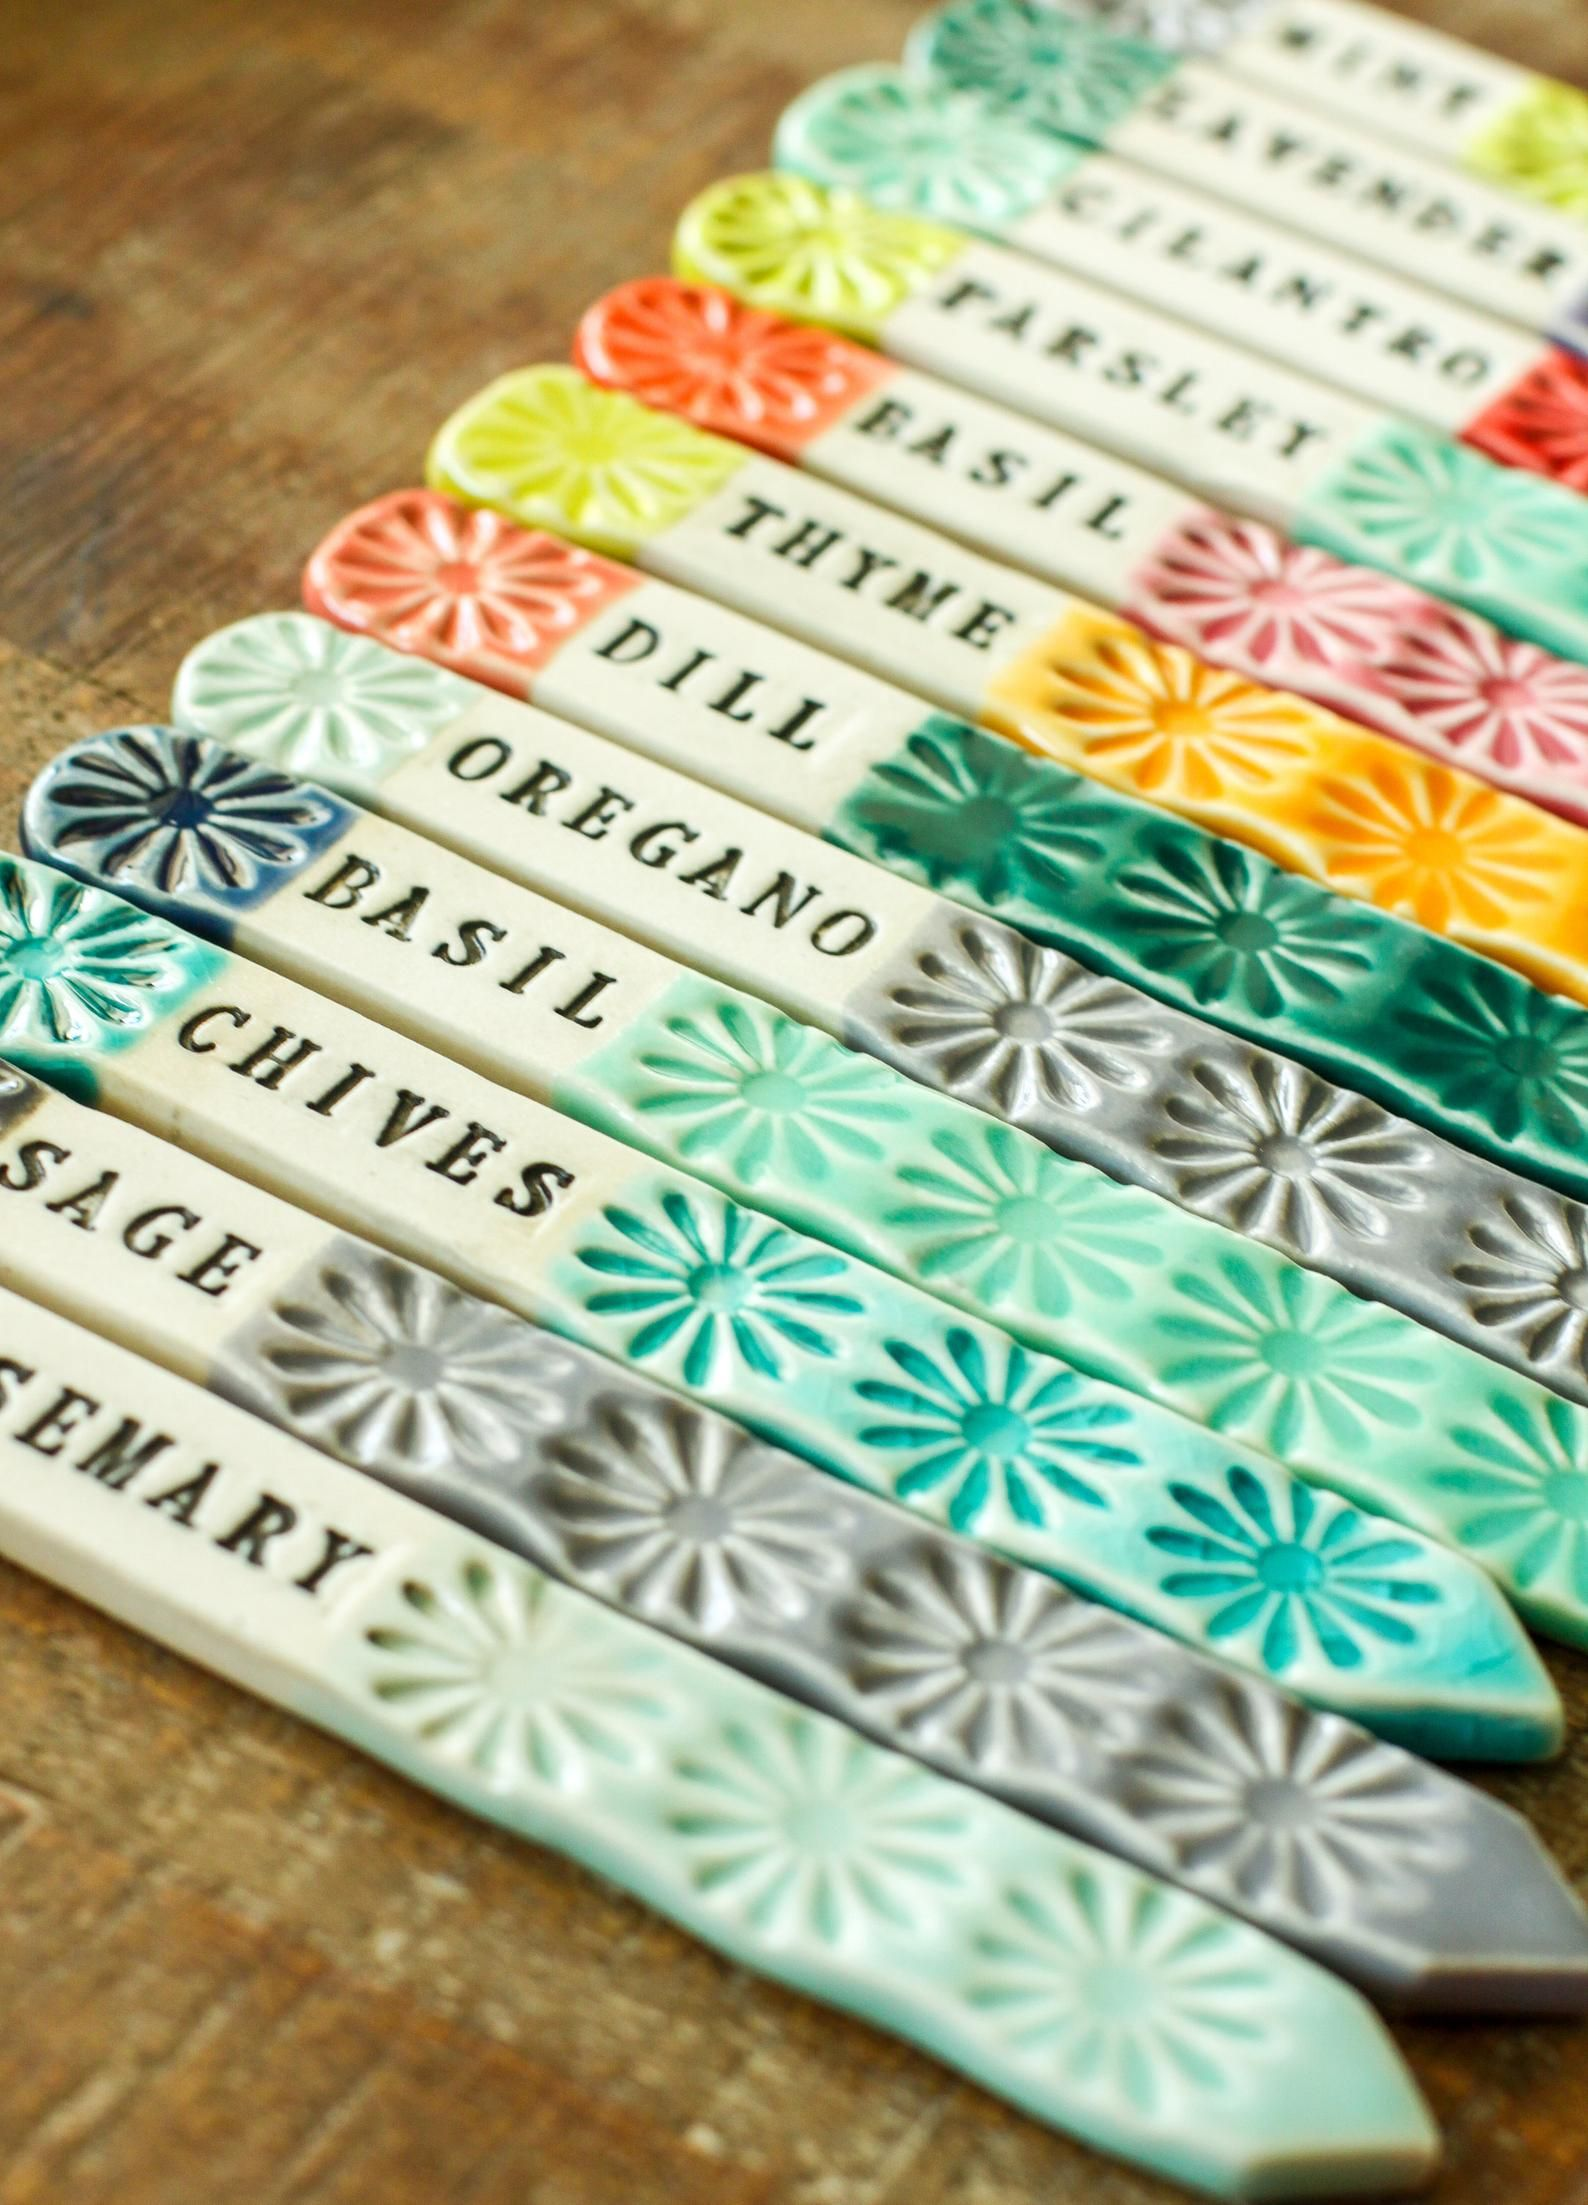 Herb Marker Herb Tag Garden Label Garden Stake Etsy In 2020 Herb Markers Garden Labels Plant Gifts